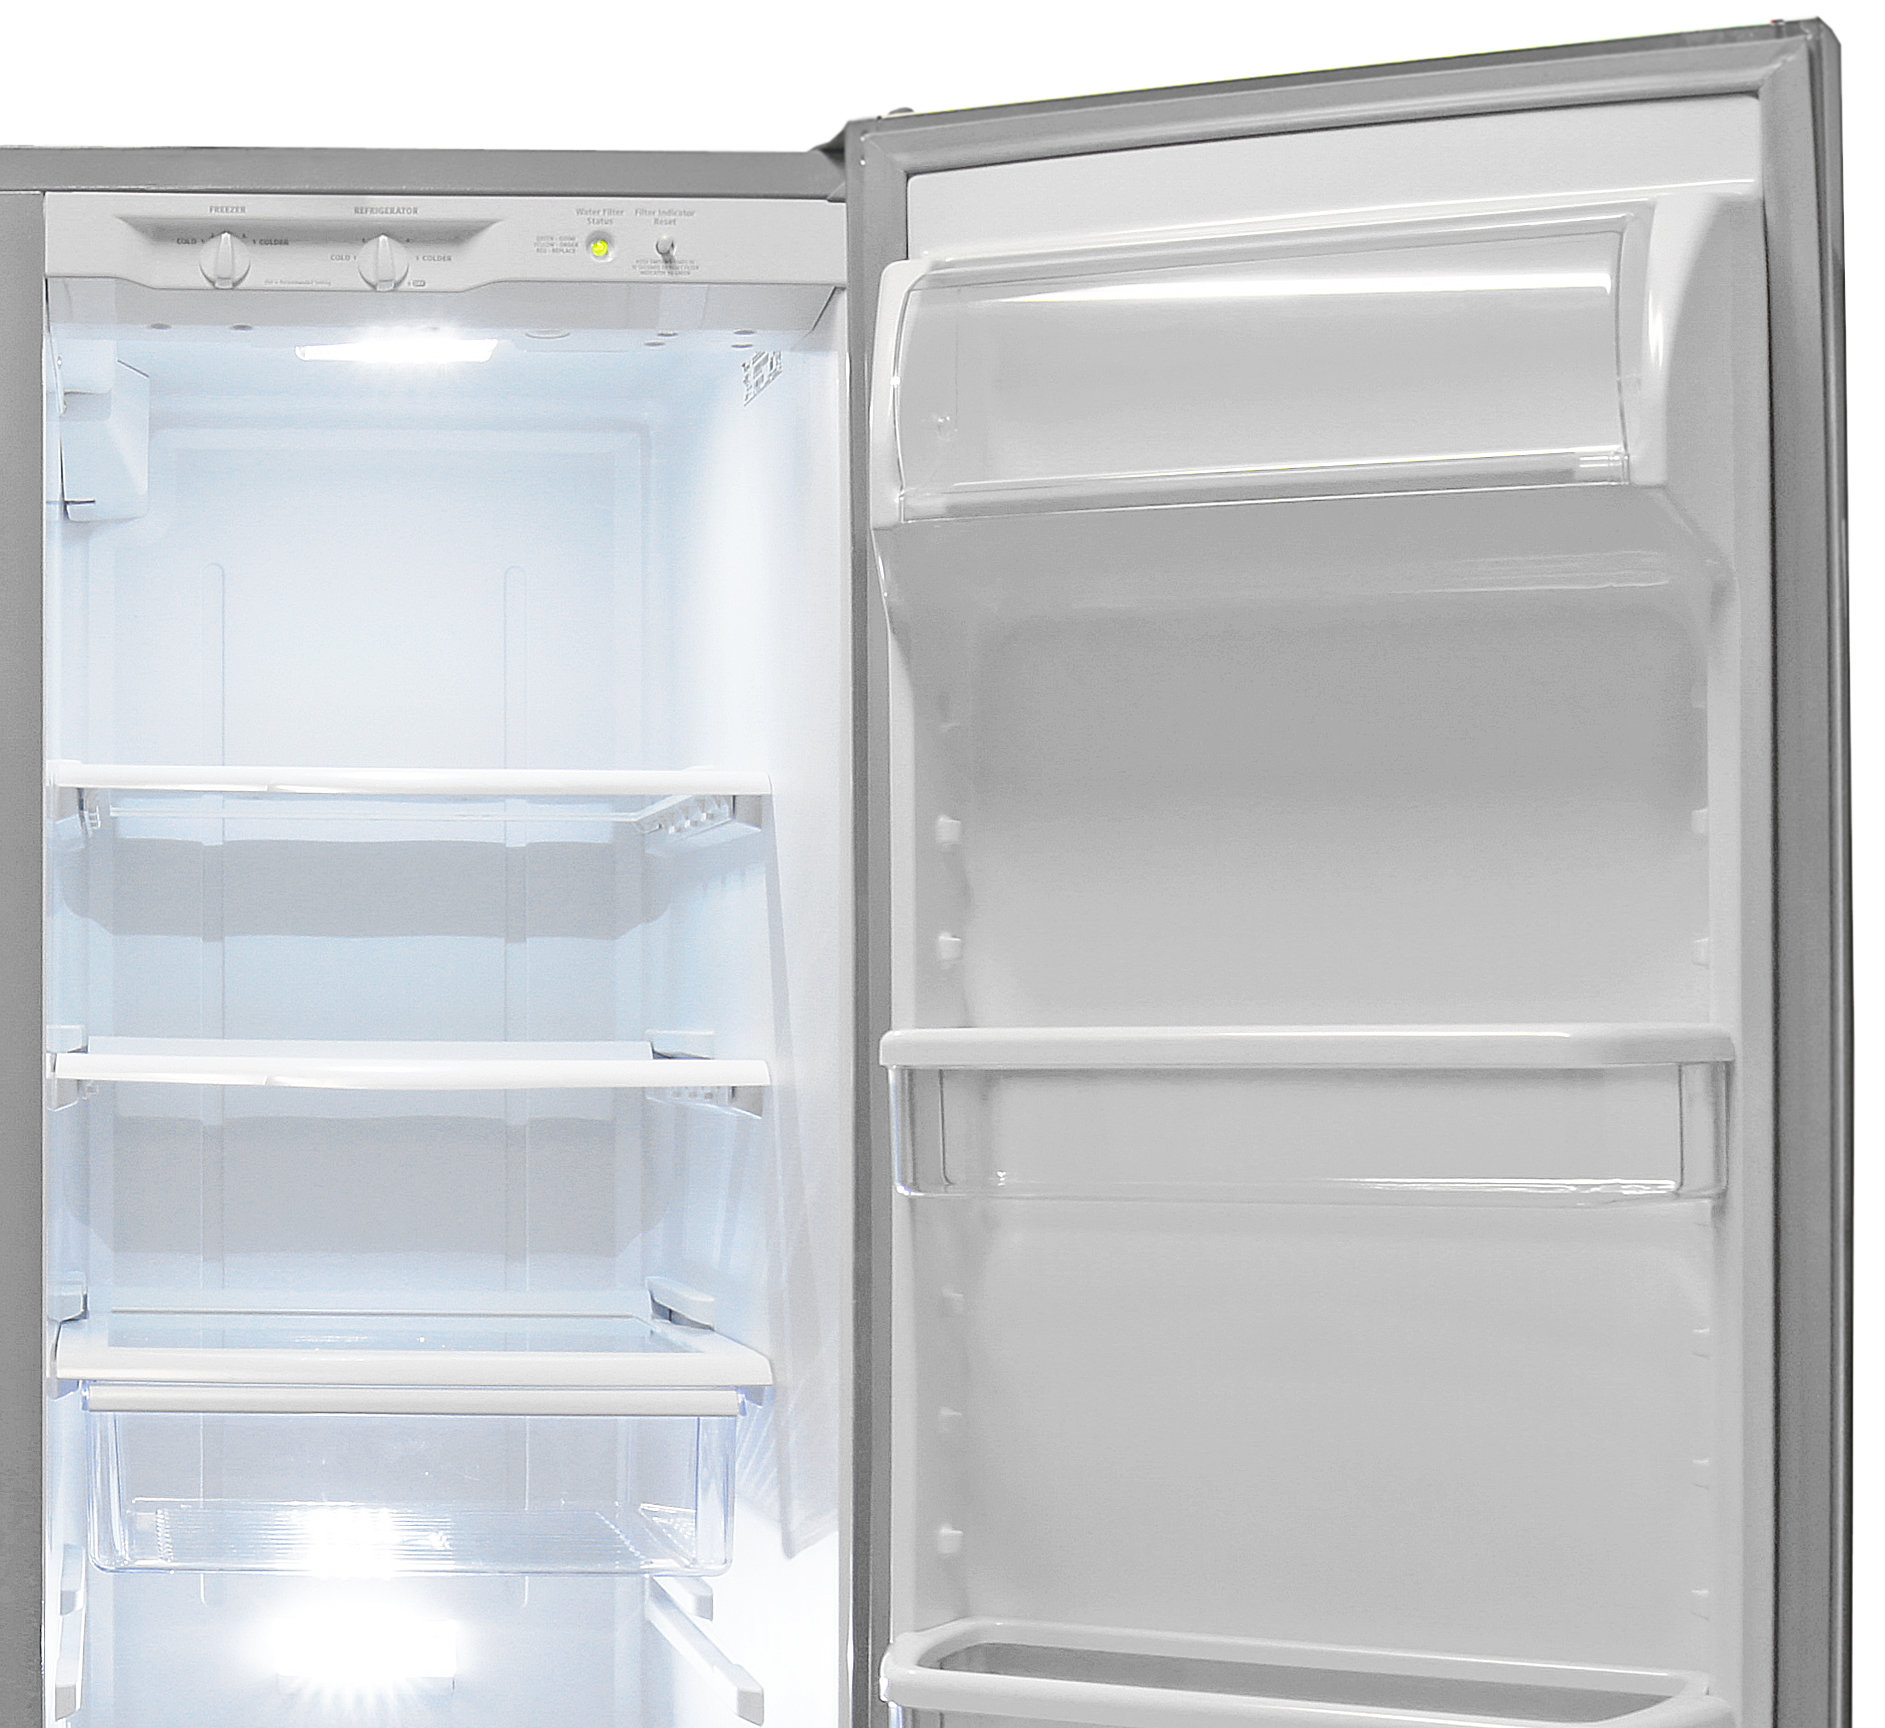 The top of the Whirlpool WRS325FDAM's fridge has plenty of storage for even taller groceries.